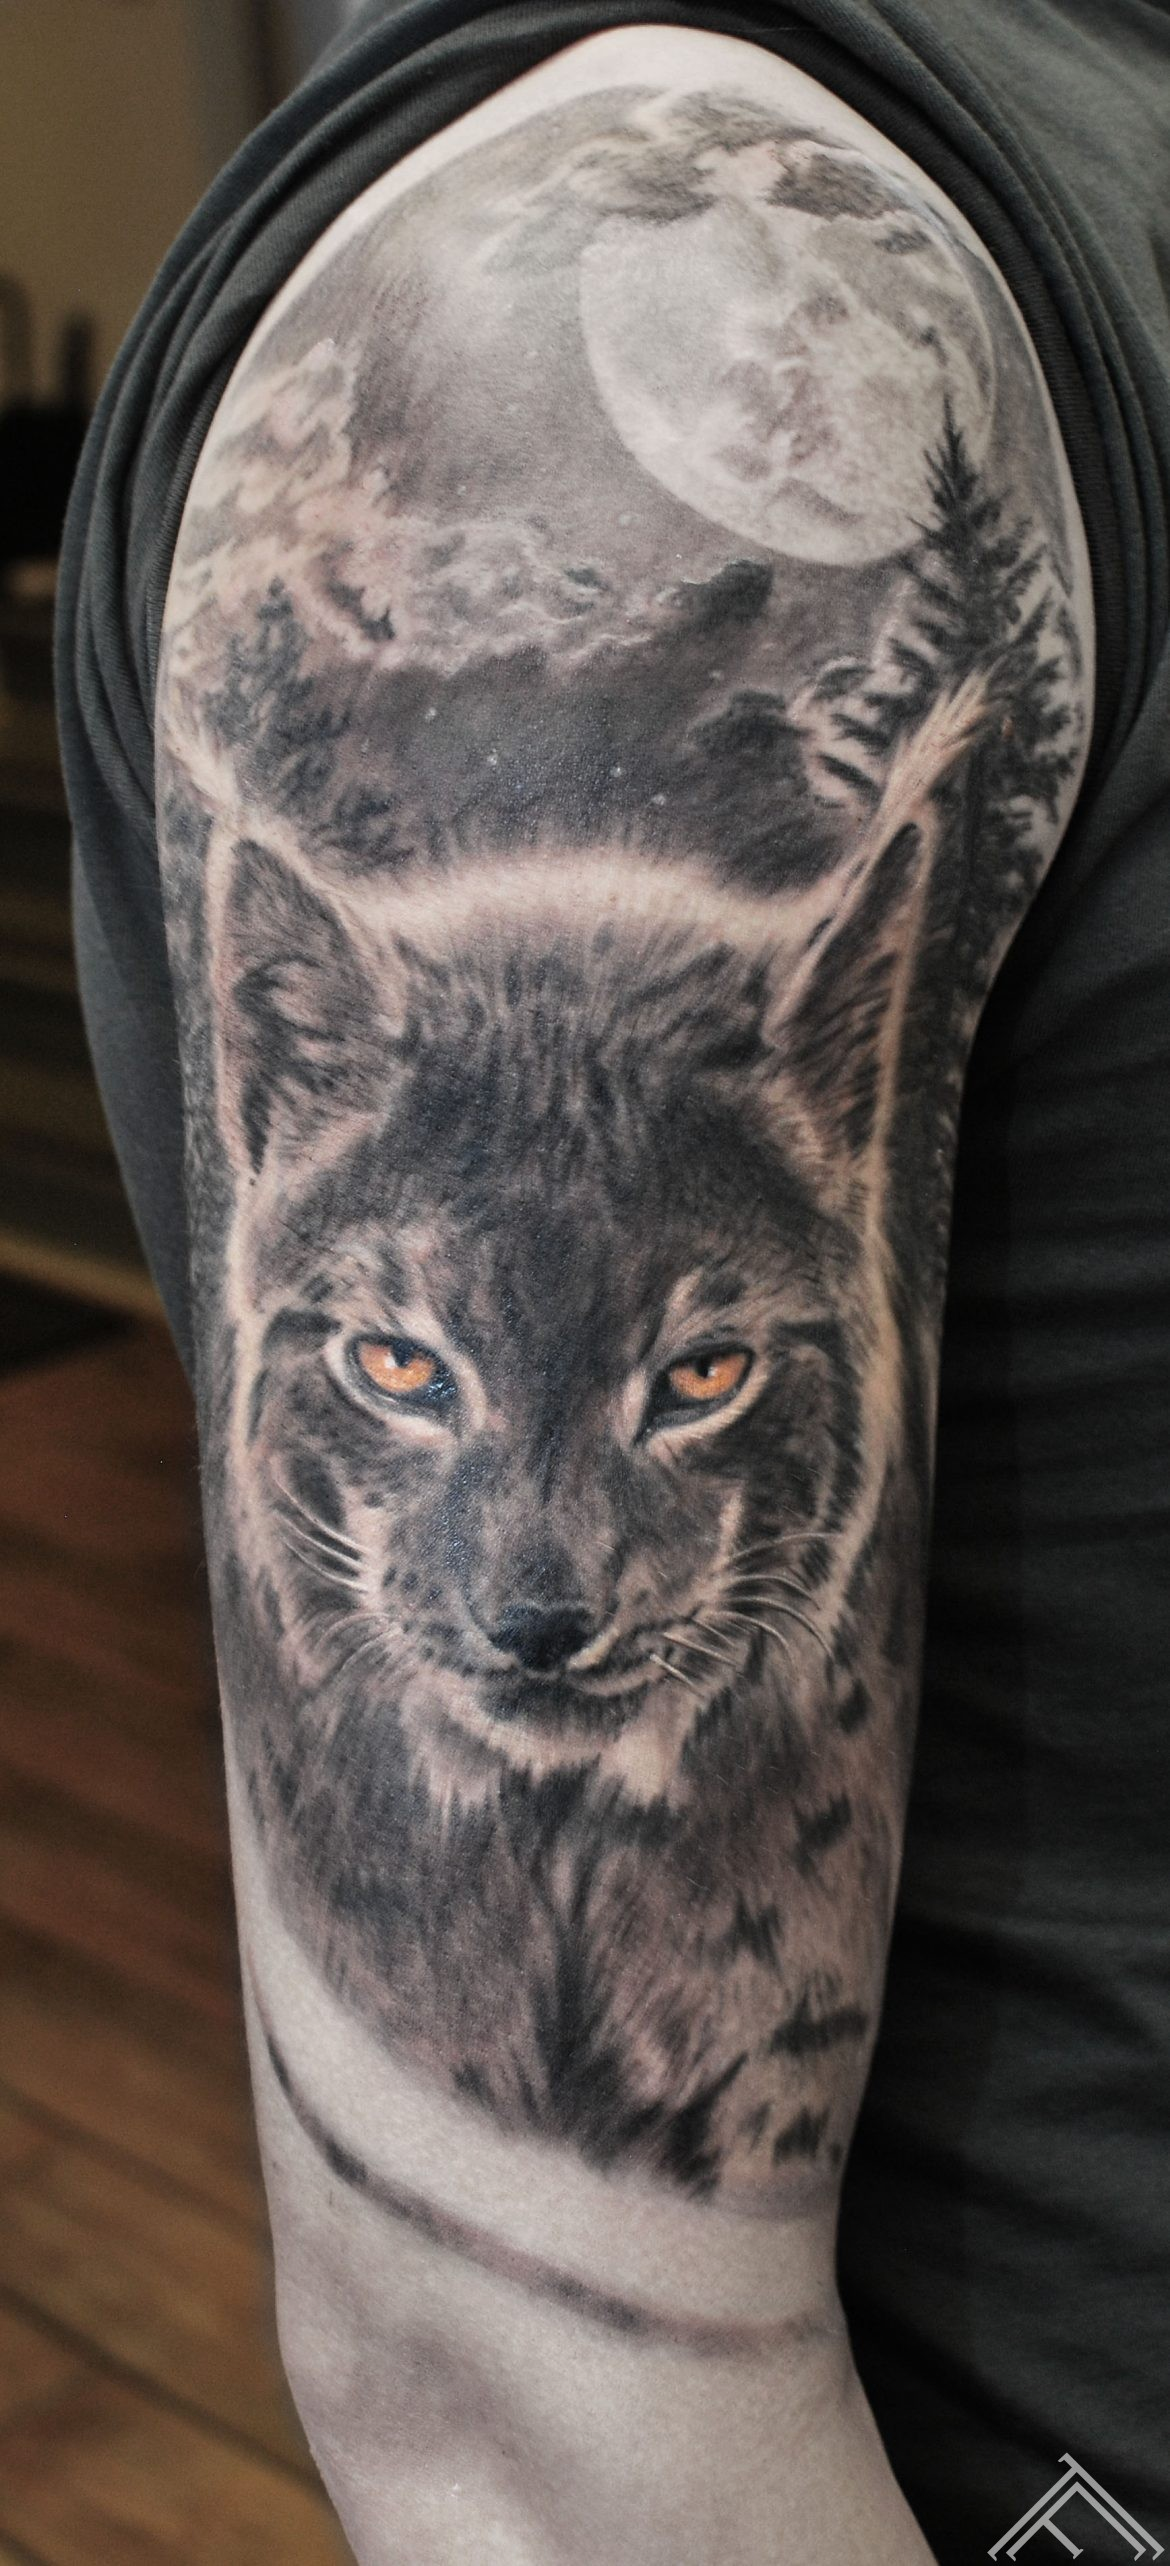 lusis-lynx-cat-tattoo-tattoofrequency-art-janisanderson-tattoofrequency-riga-normsize